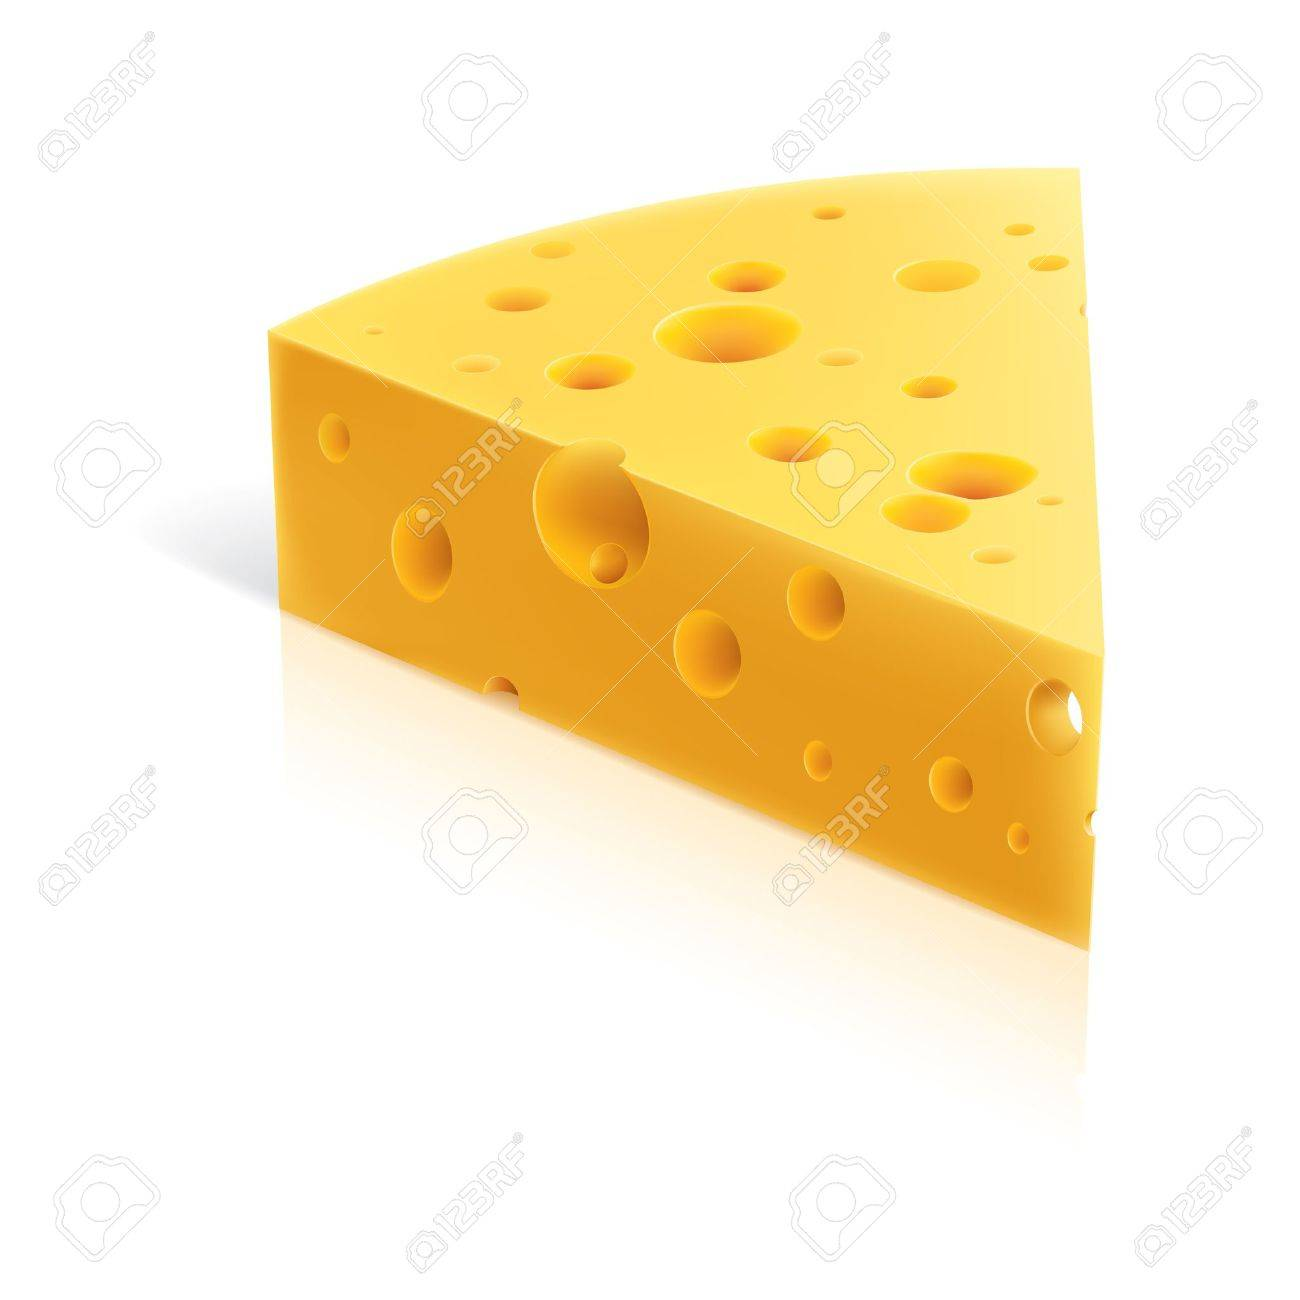 Illustration Of A Piece Of Cheese. Isolated On White Background Royalty  Free Cliparts, Vectors, And Stock Illustration. Image 8251039.